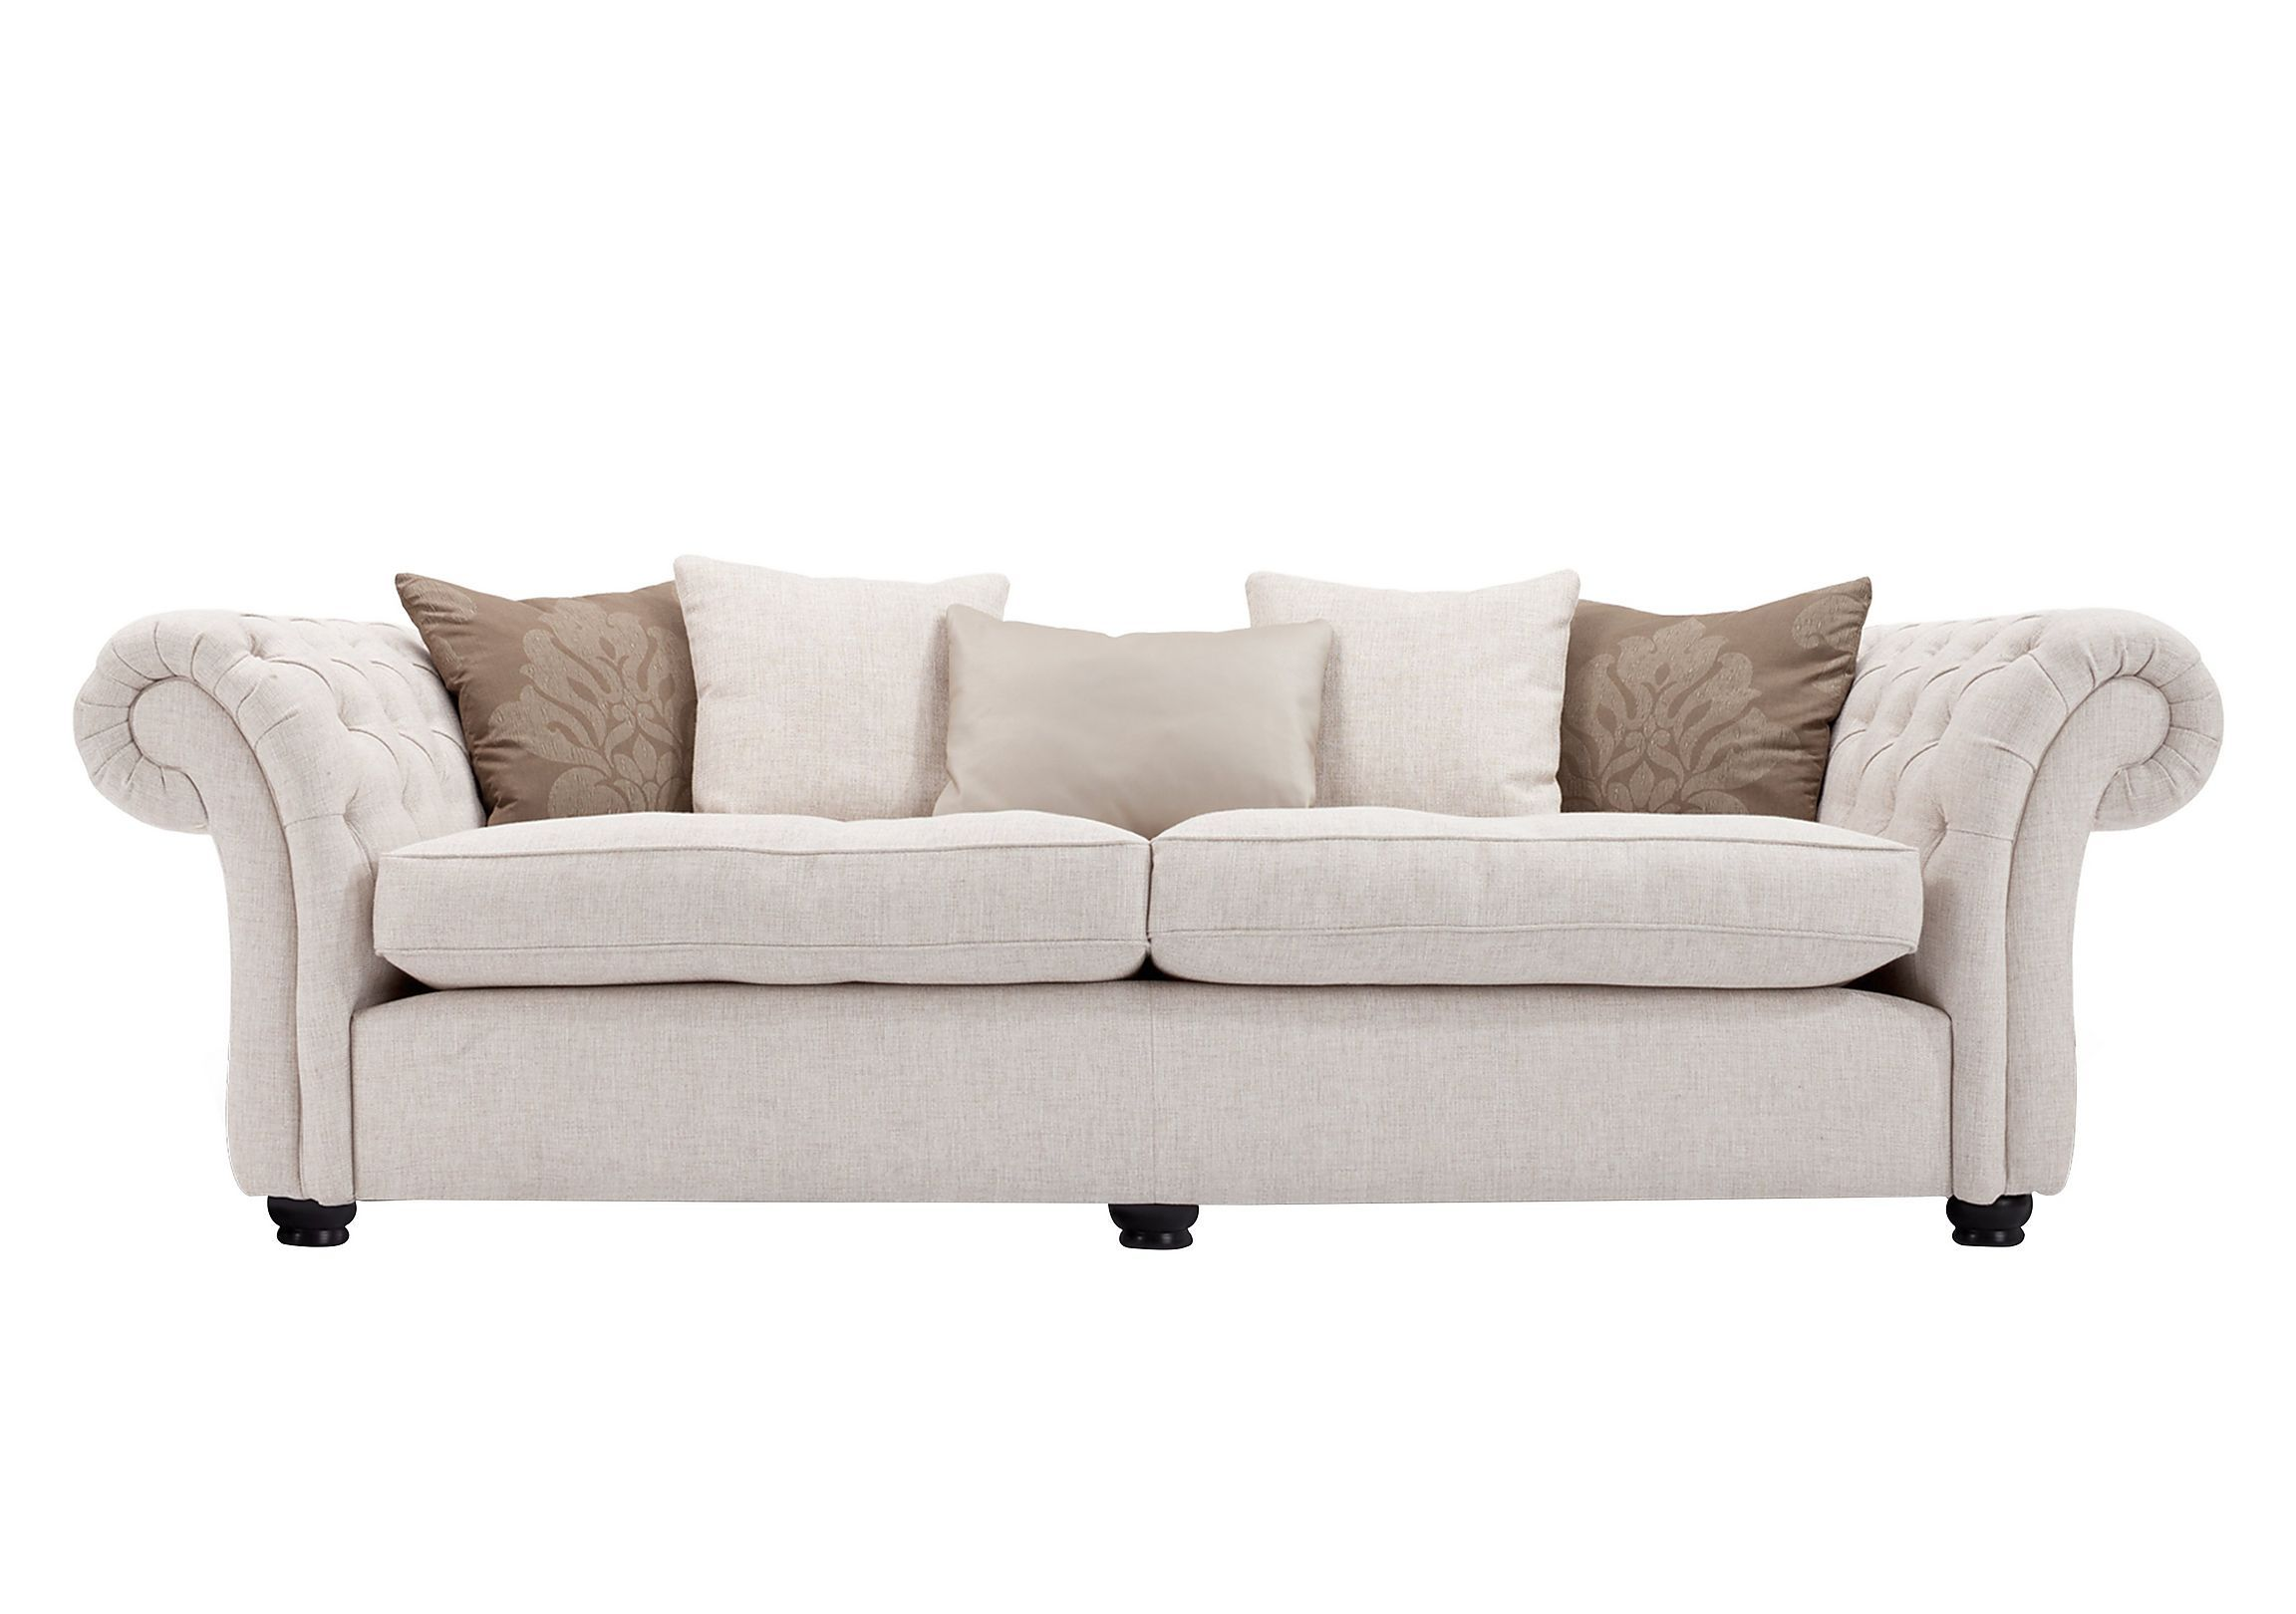 Langham Place 4 Seater Sofa Luxury Sofa Modern Sofa Retro Sofa